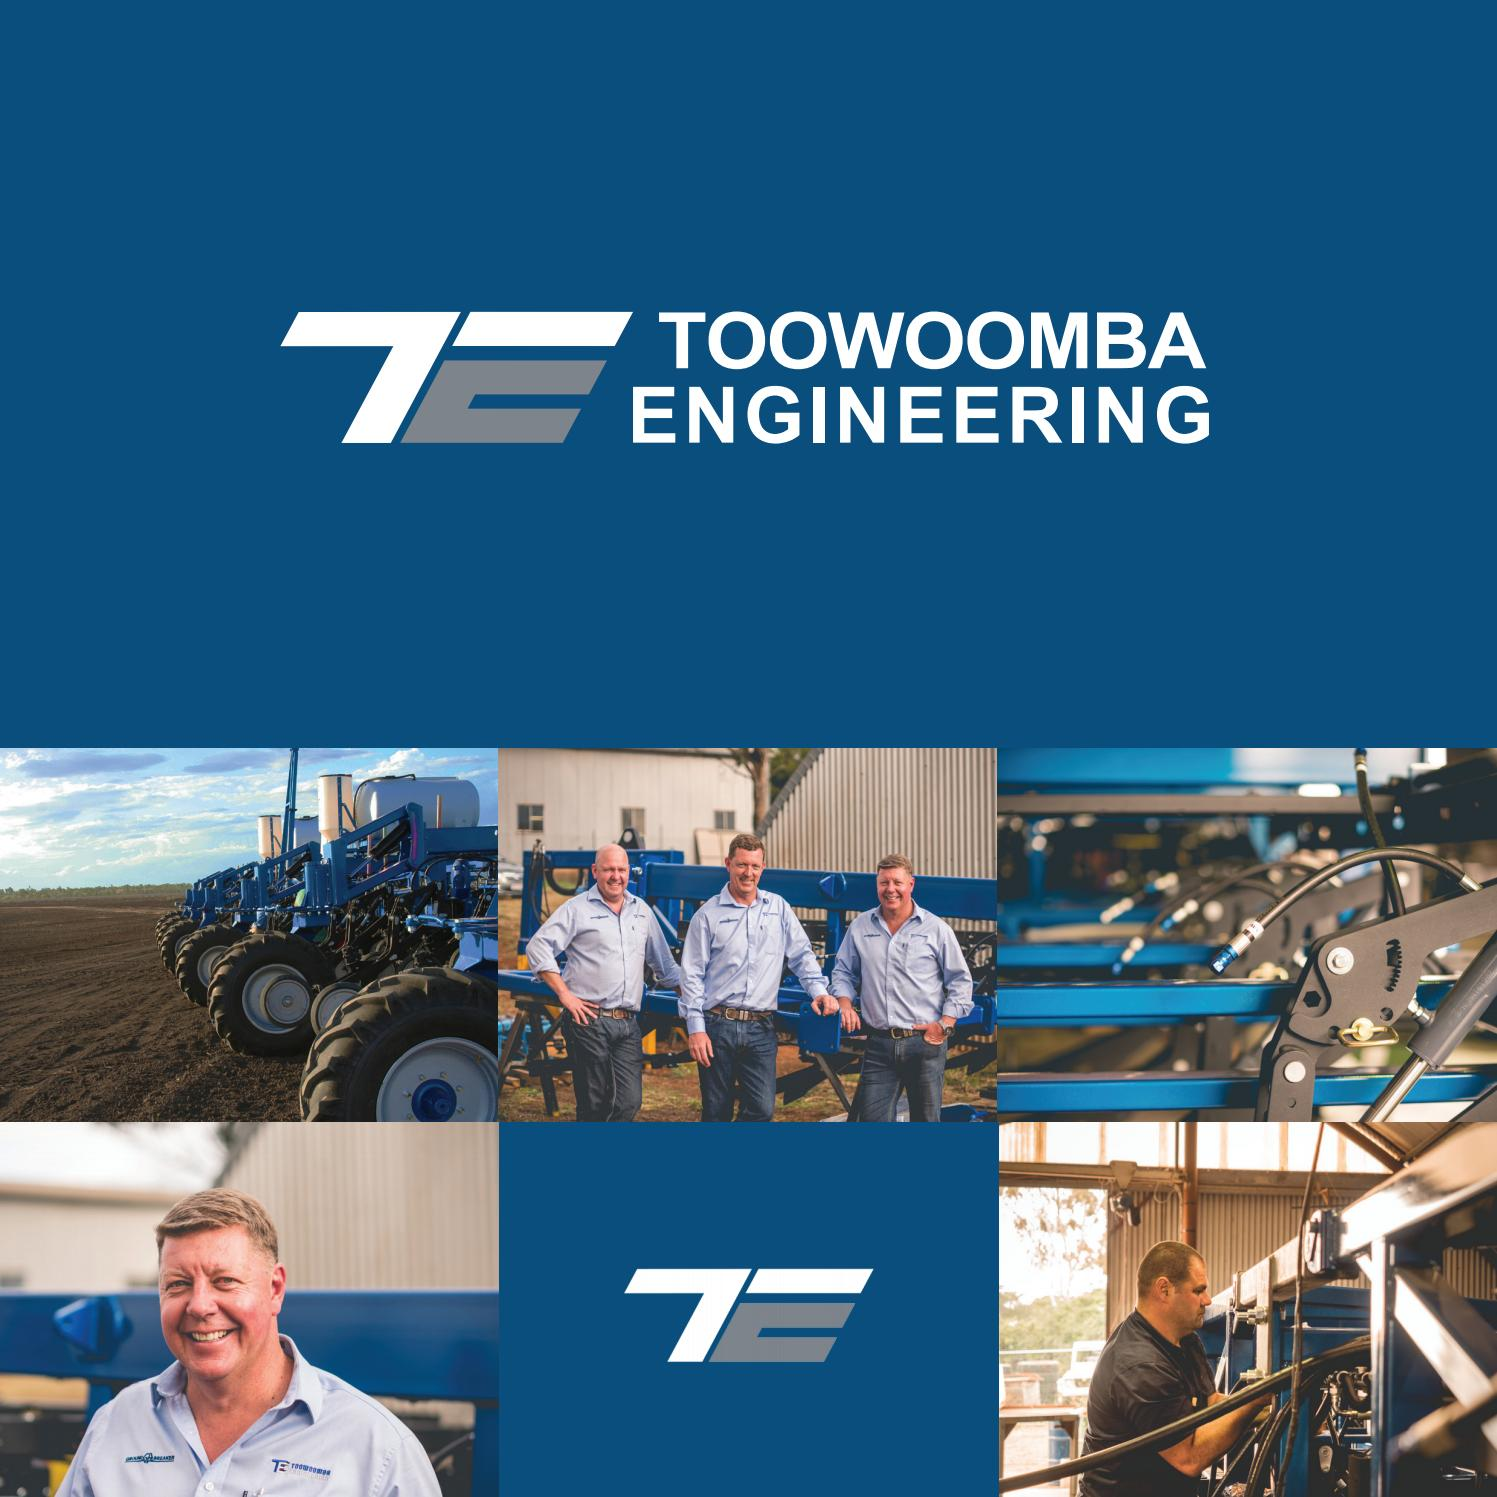 Toowoomba Engineering by Toowoomba Engineering - issuu